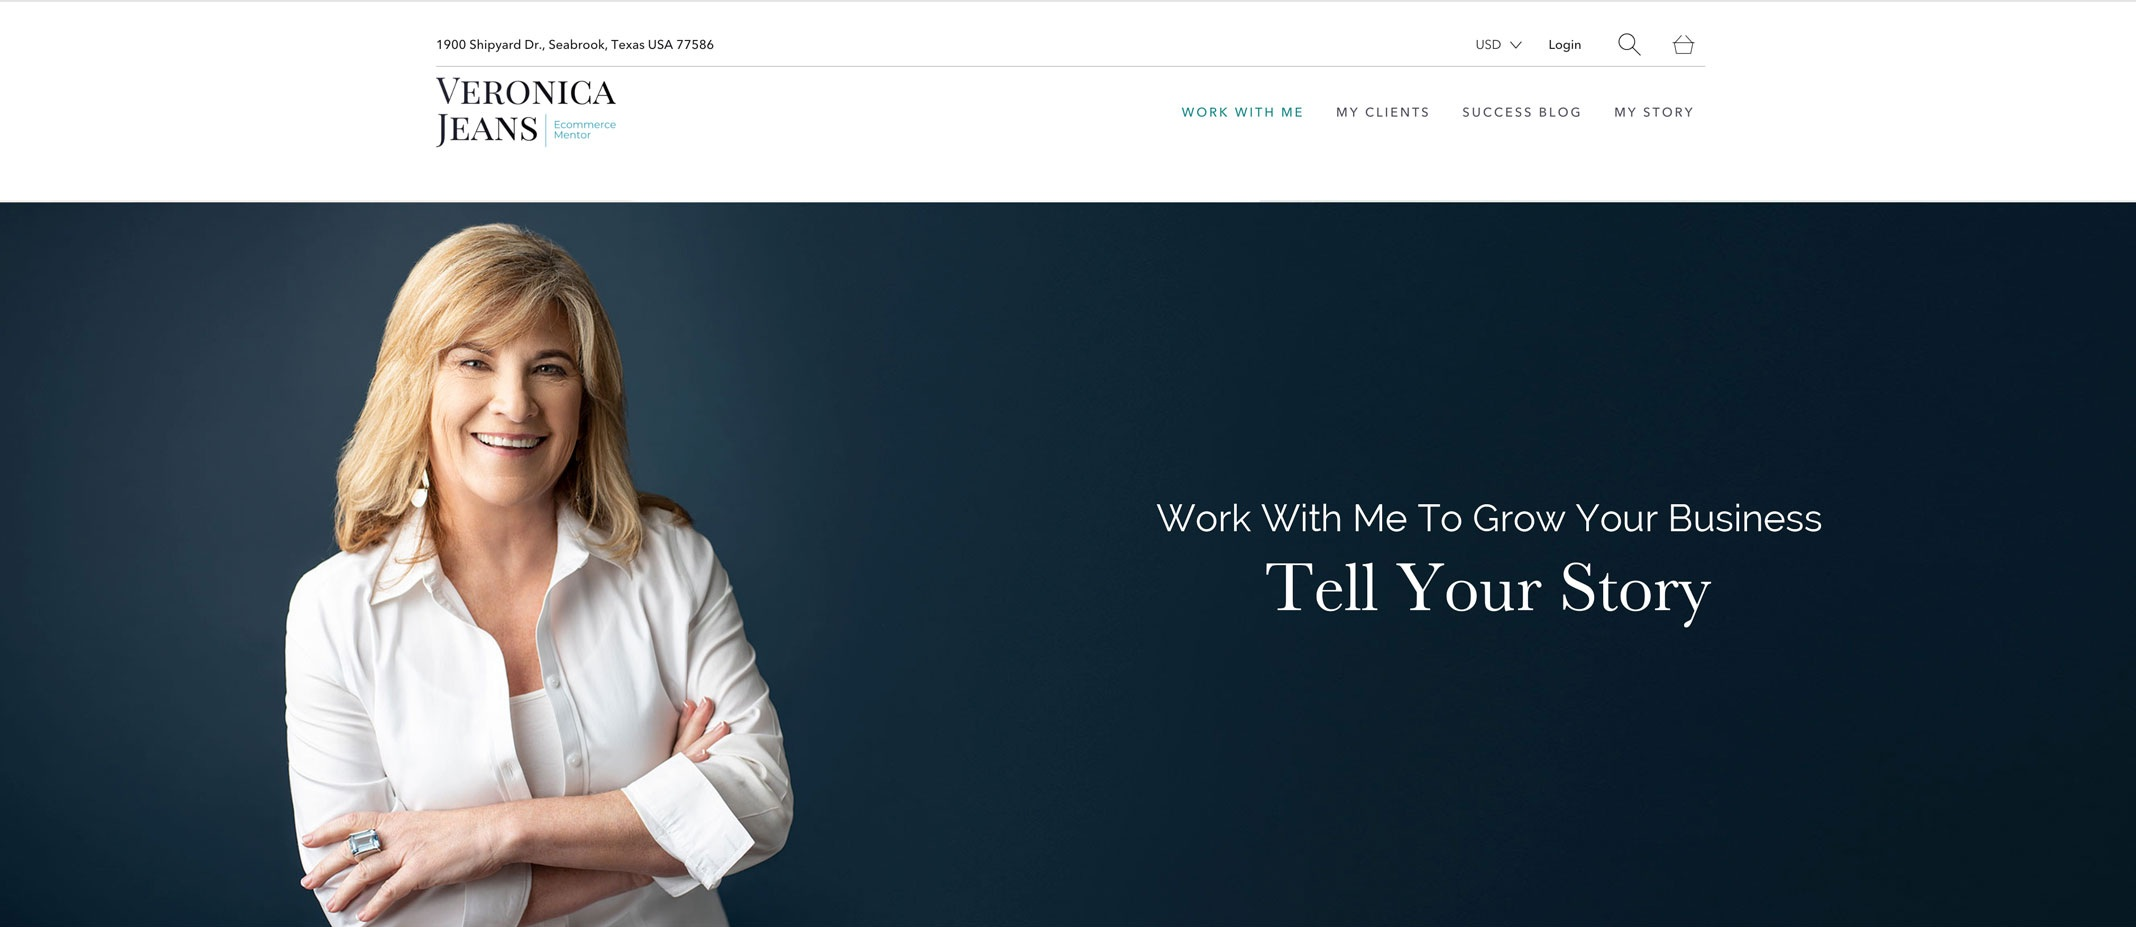 Website banner for personal branding